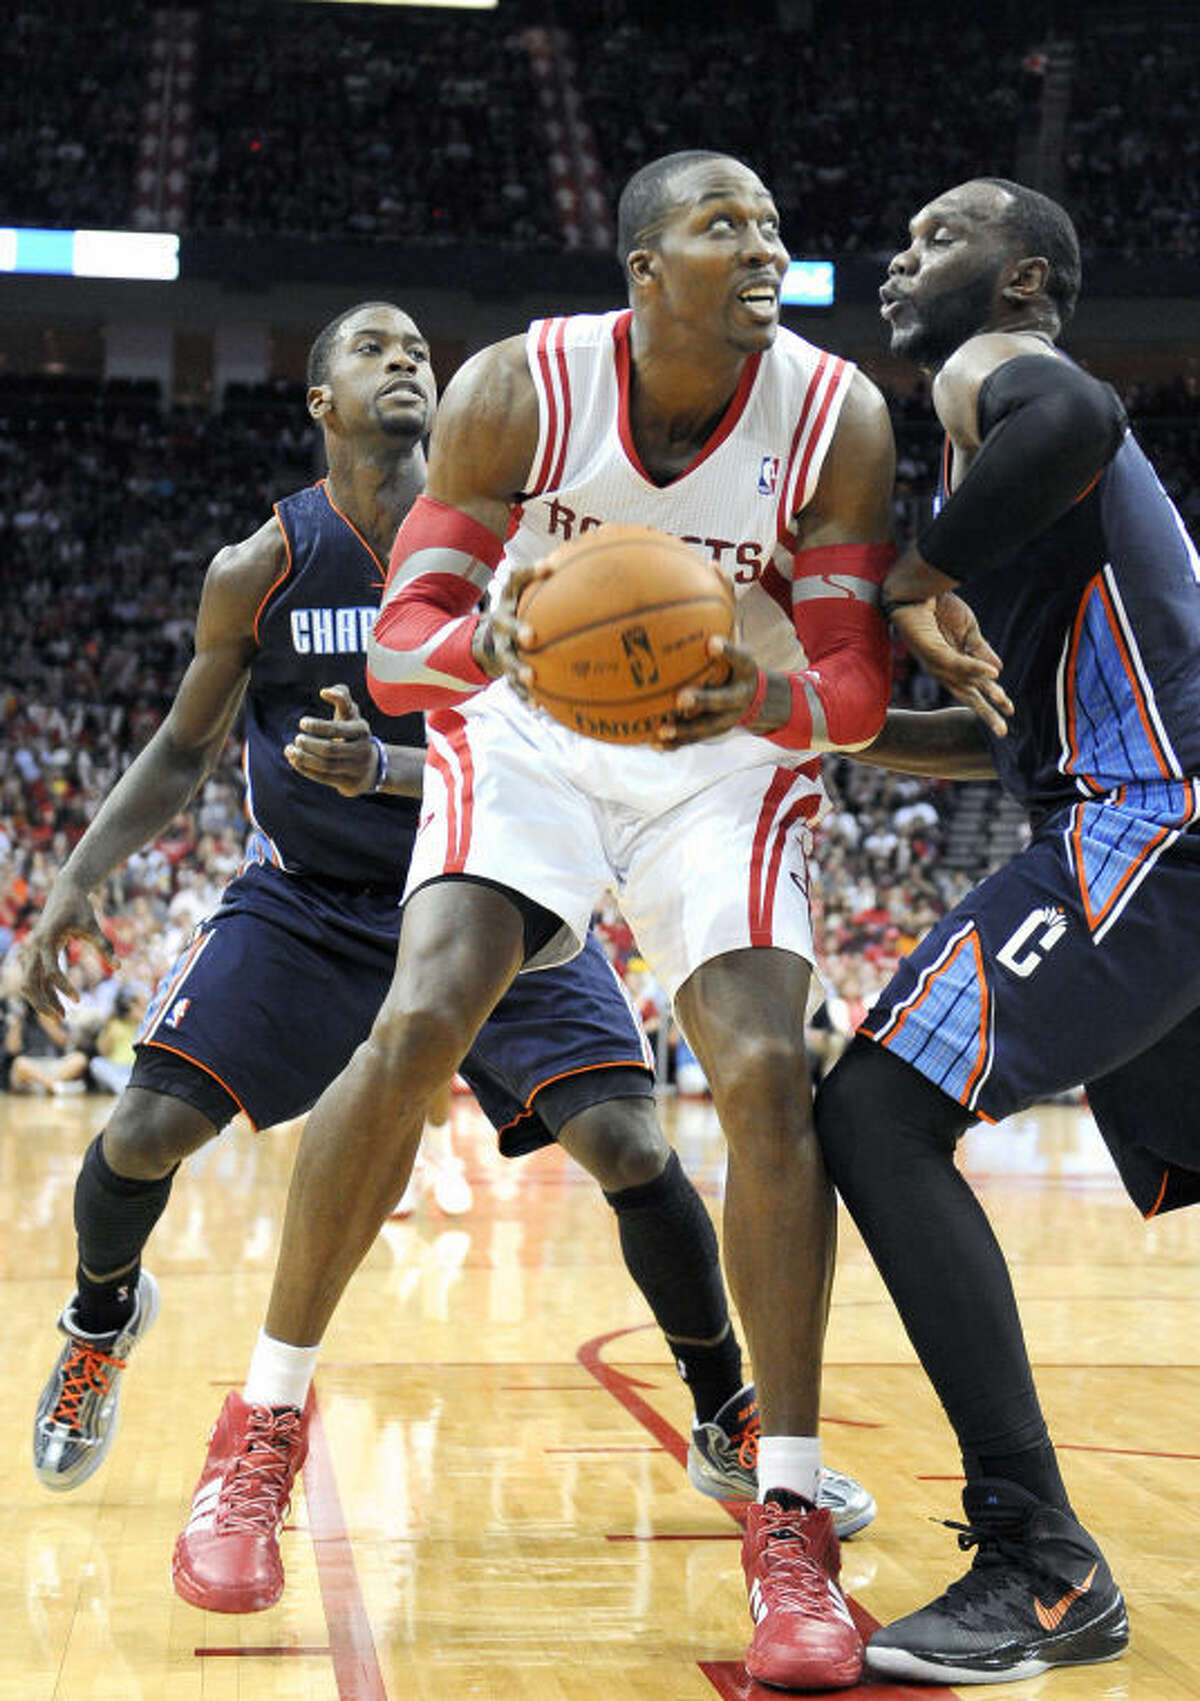 Houston Rockets center Dwight Howard looks to the basket between Charlotte Bobcats defenders Michael Kidd-Gilchrist, left, and Al Jefferson in the second half Wednesday in Houston.